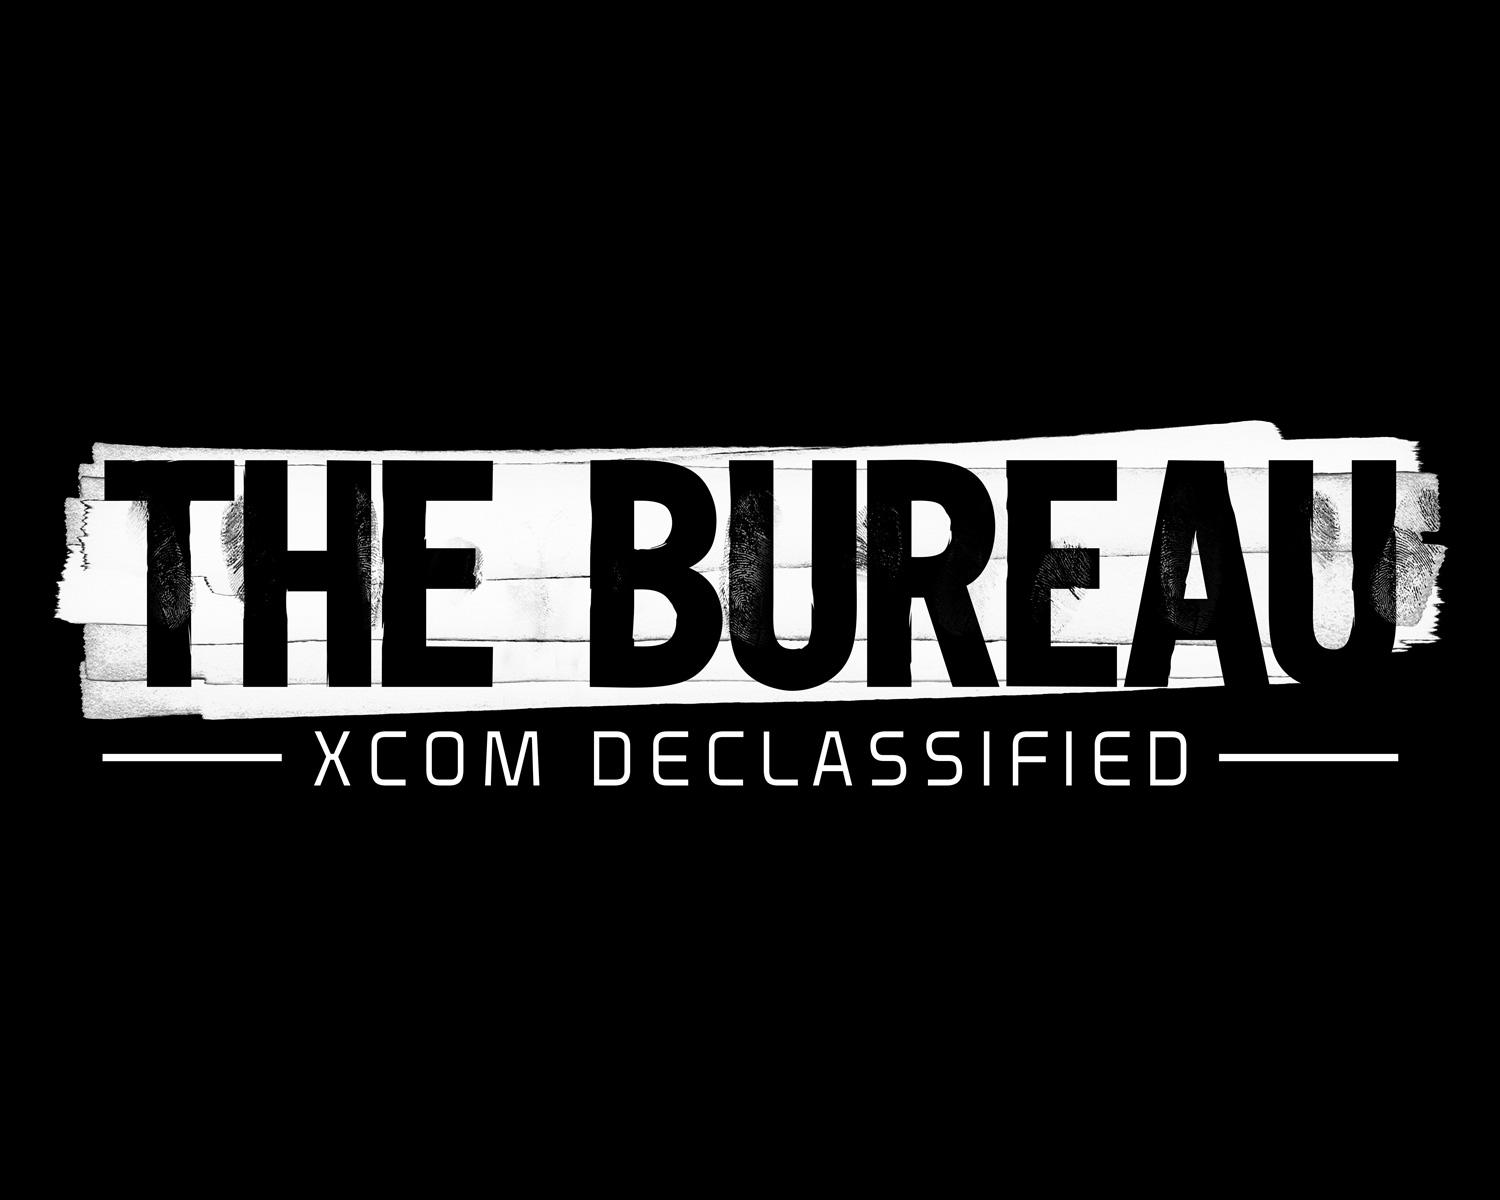 The Bureau XCOM Declassified Review: Destined To Be Underrated